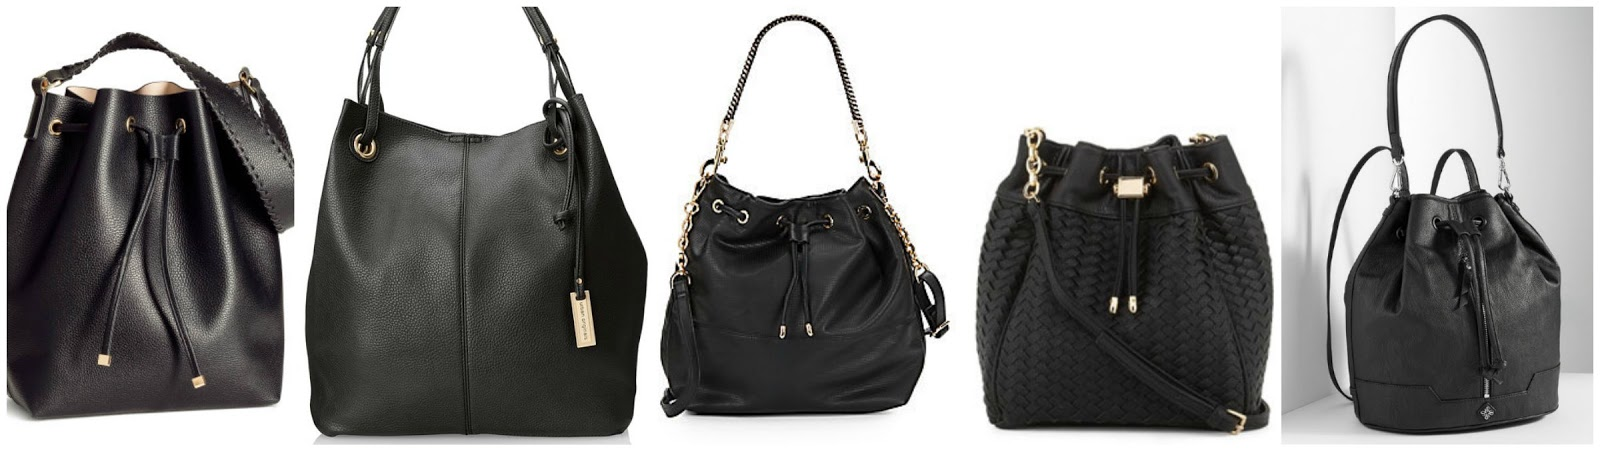 H&m Drawstring Shoulder Bag